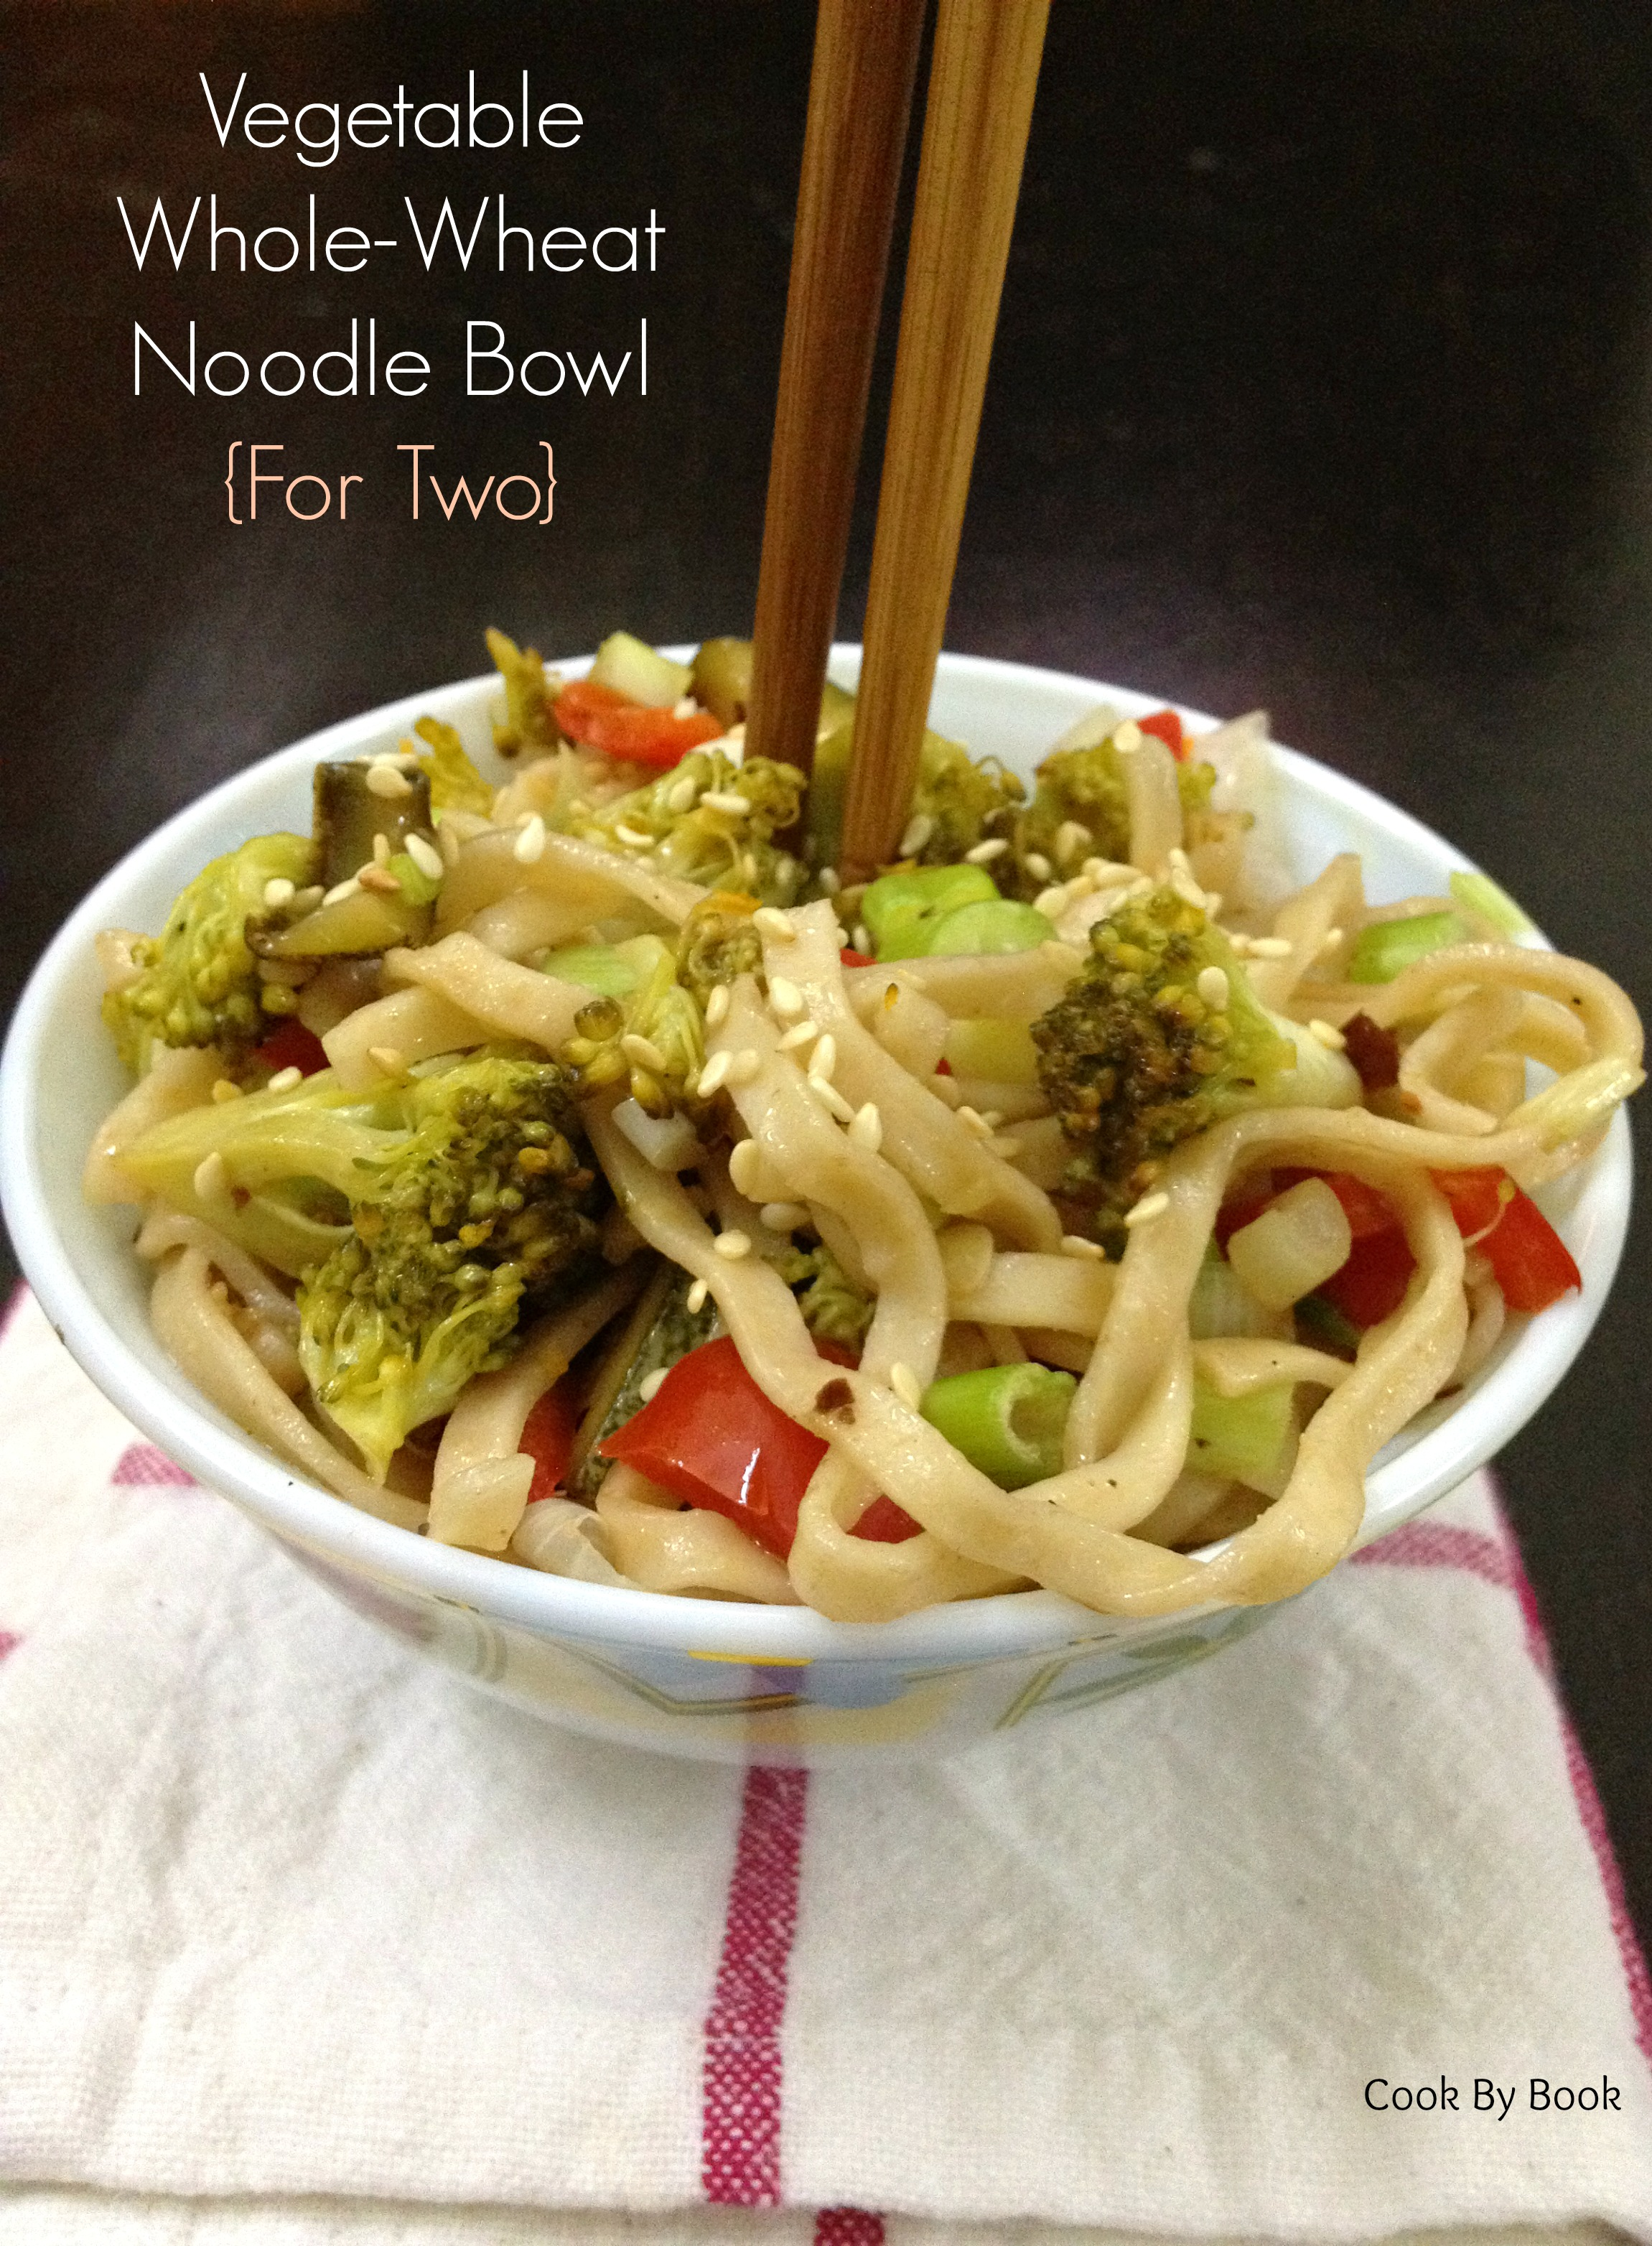 Vegetable Whole-Wheat Noodle Bowl ~ For Two1